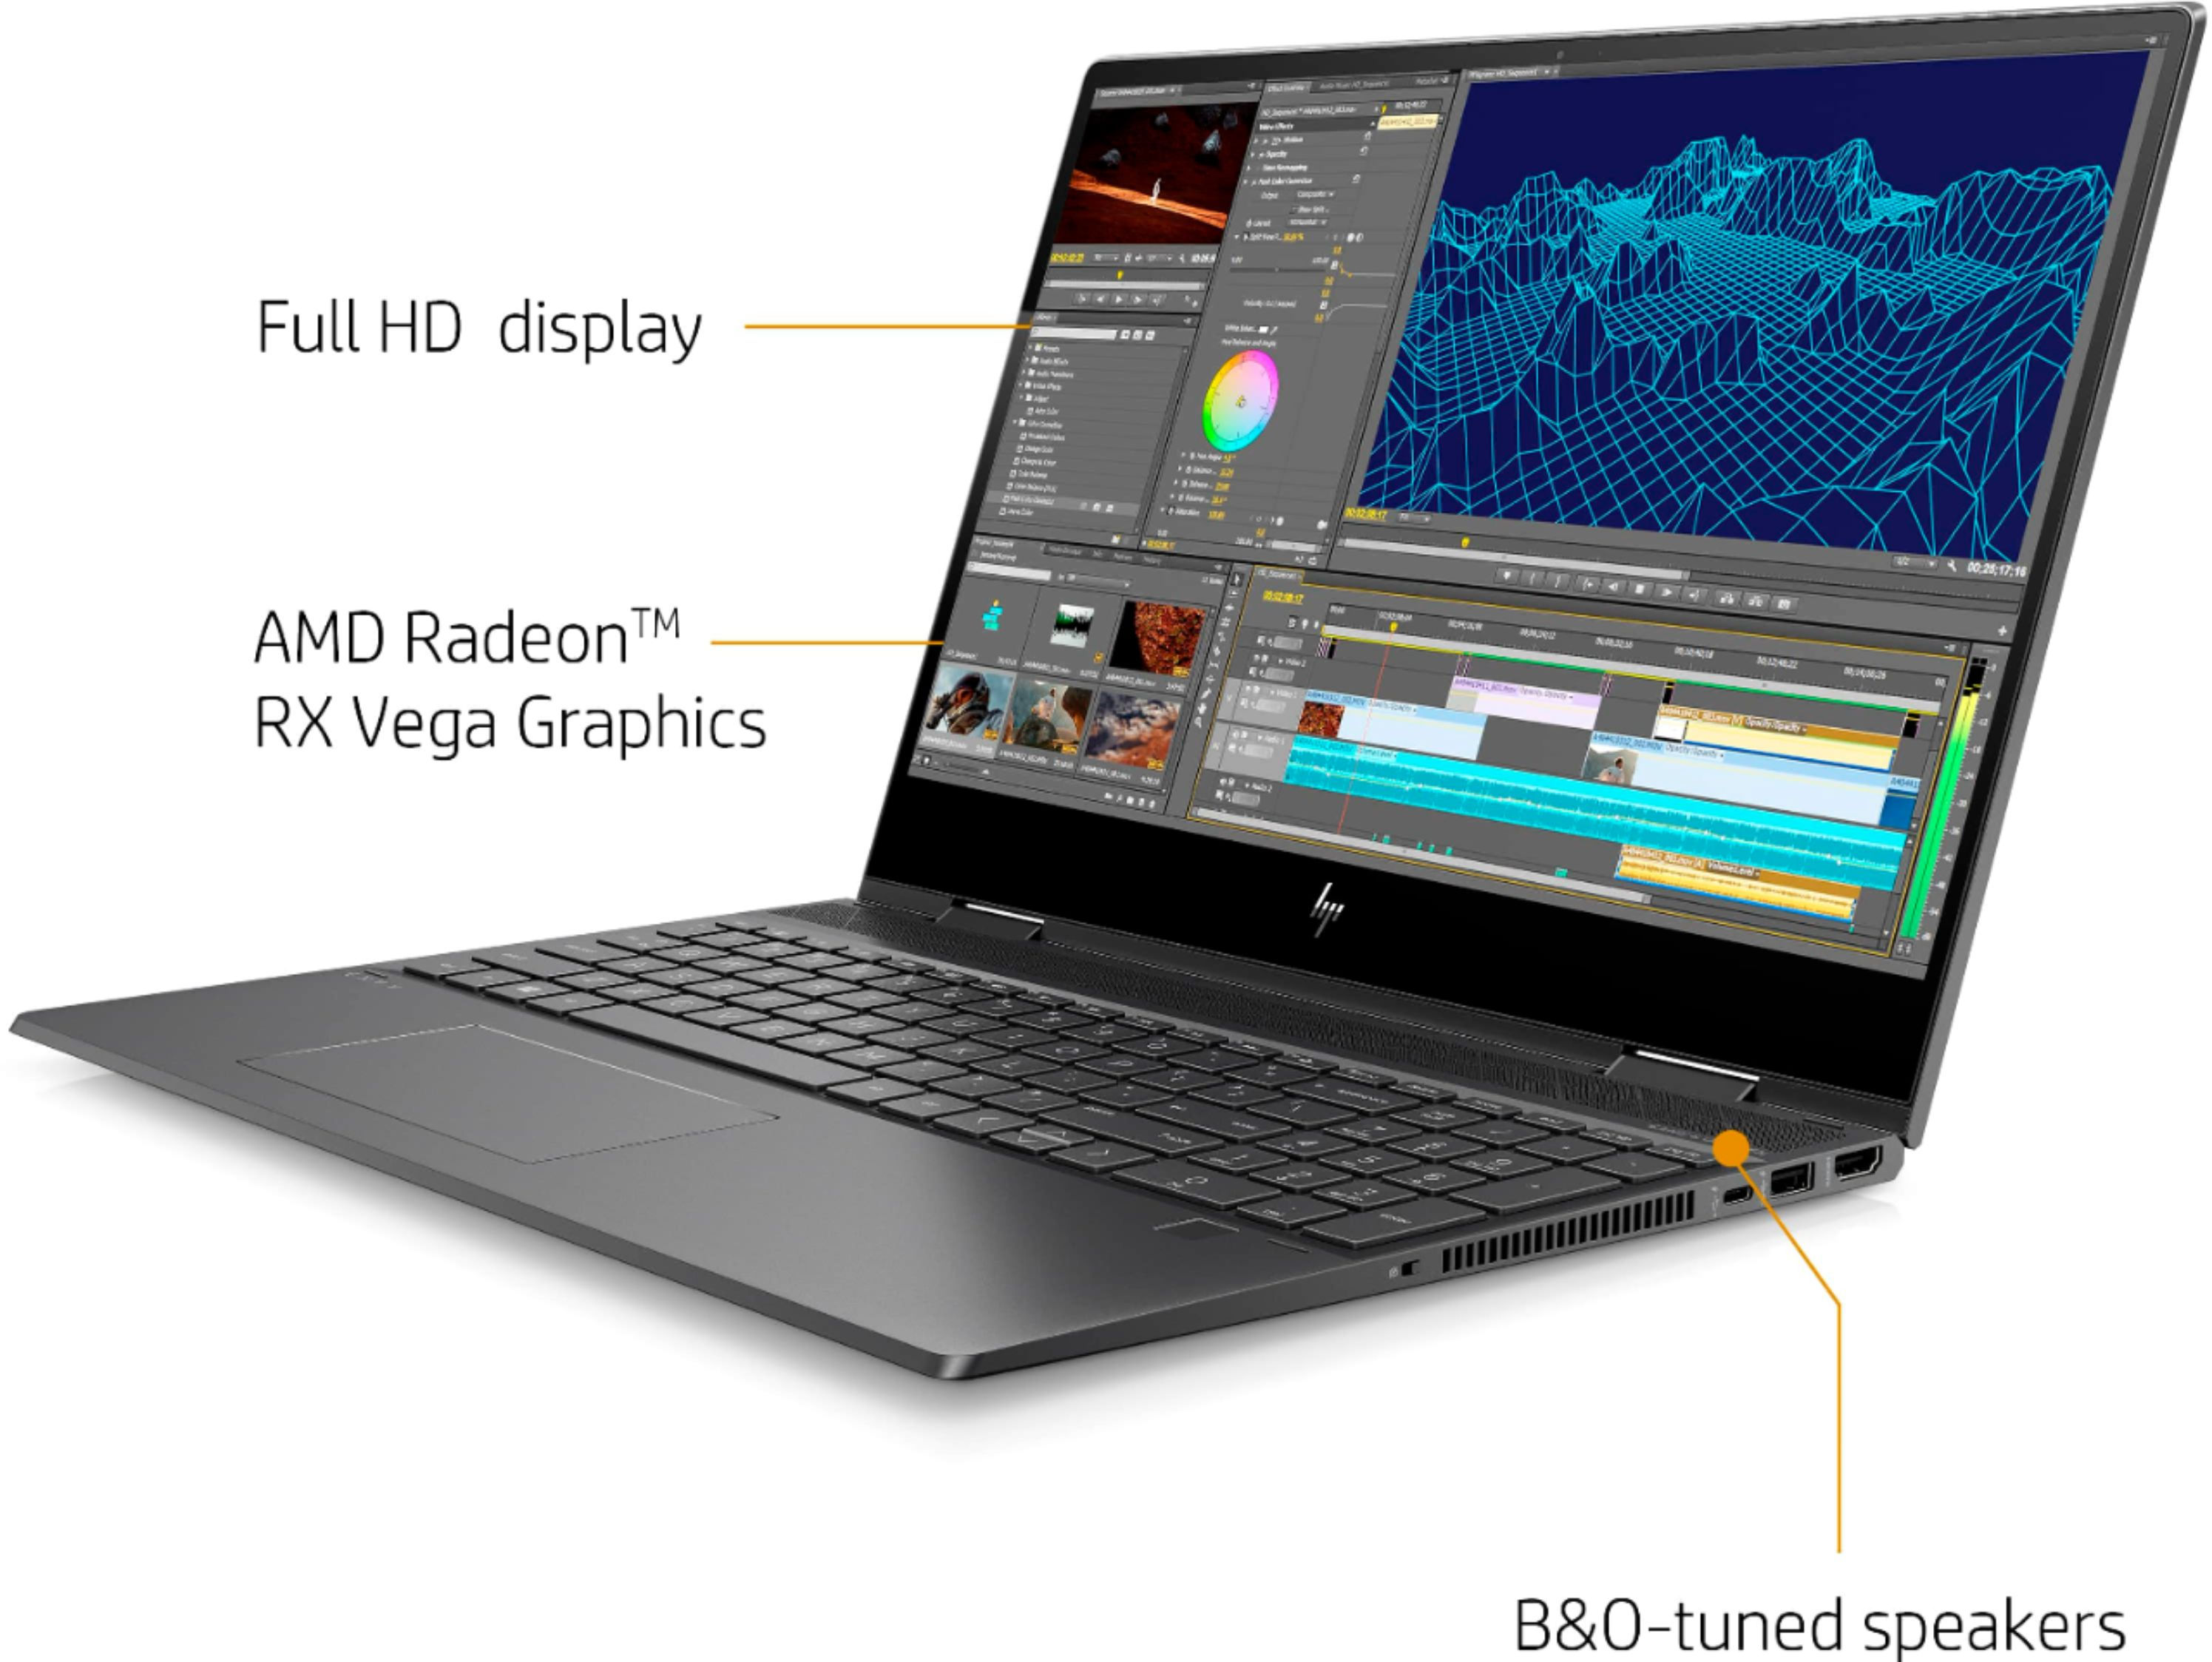 """Angle Zoom. HP - ENVY x360 2-in-1 15.6"""" Touch-Screen Laptop - AMD Ryzen 5 - 8GB Memory - 256GB Solid State Drive - Sandblasted Anodized Finish, Nightfall Black."""